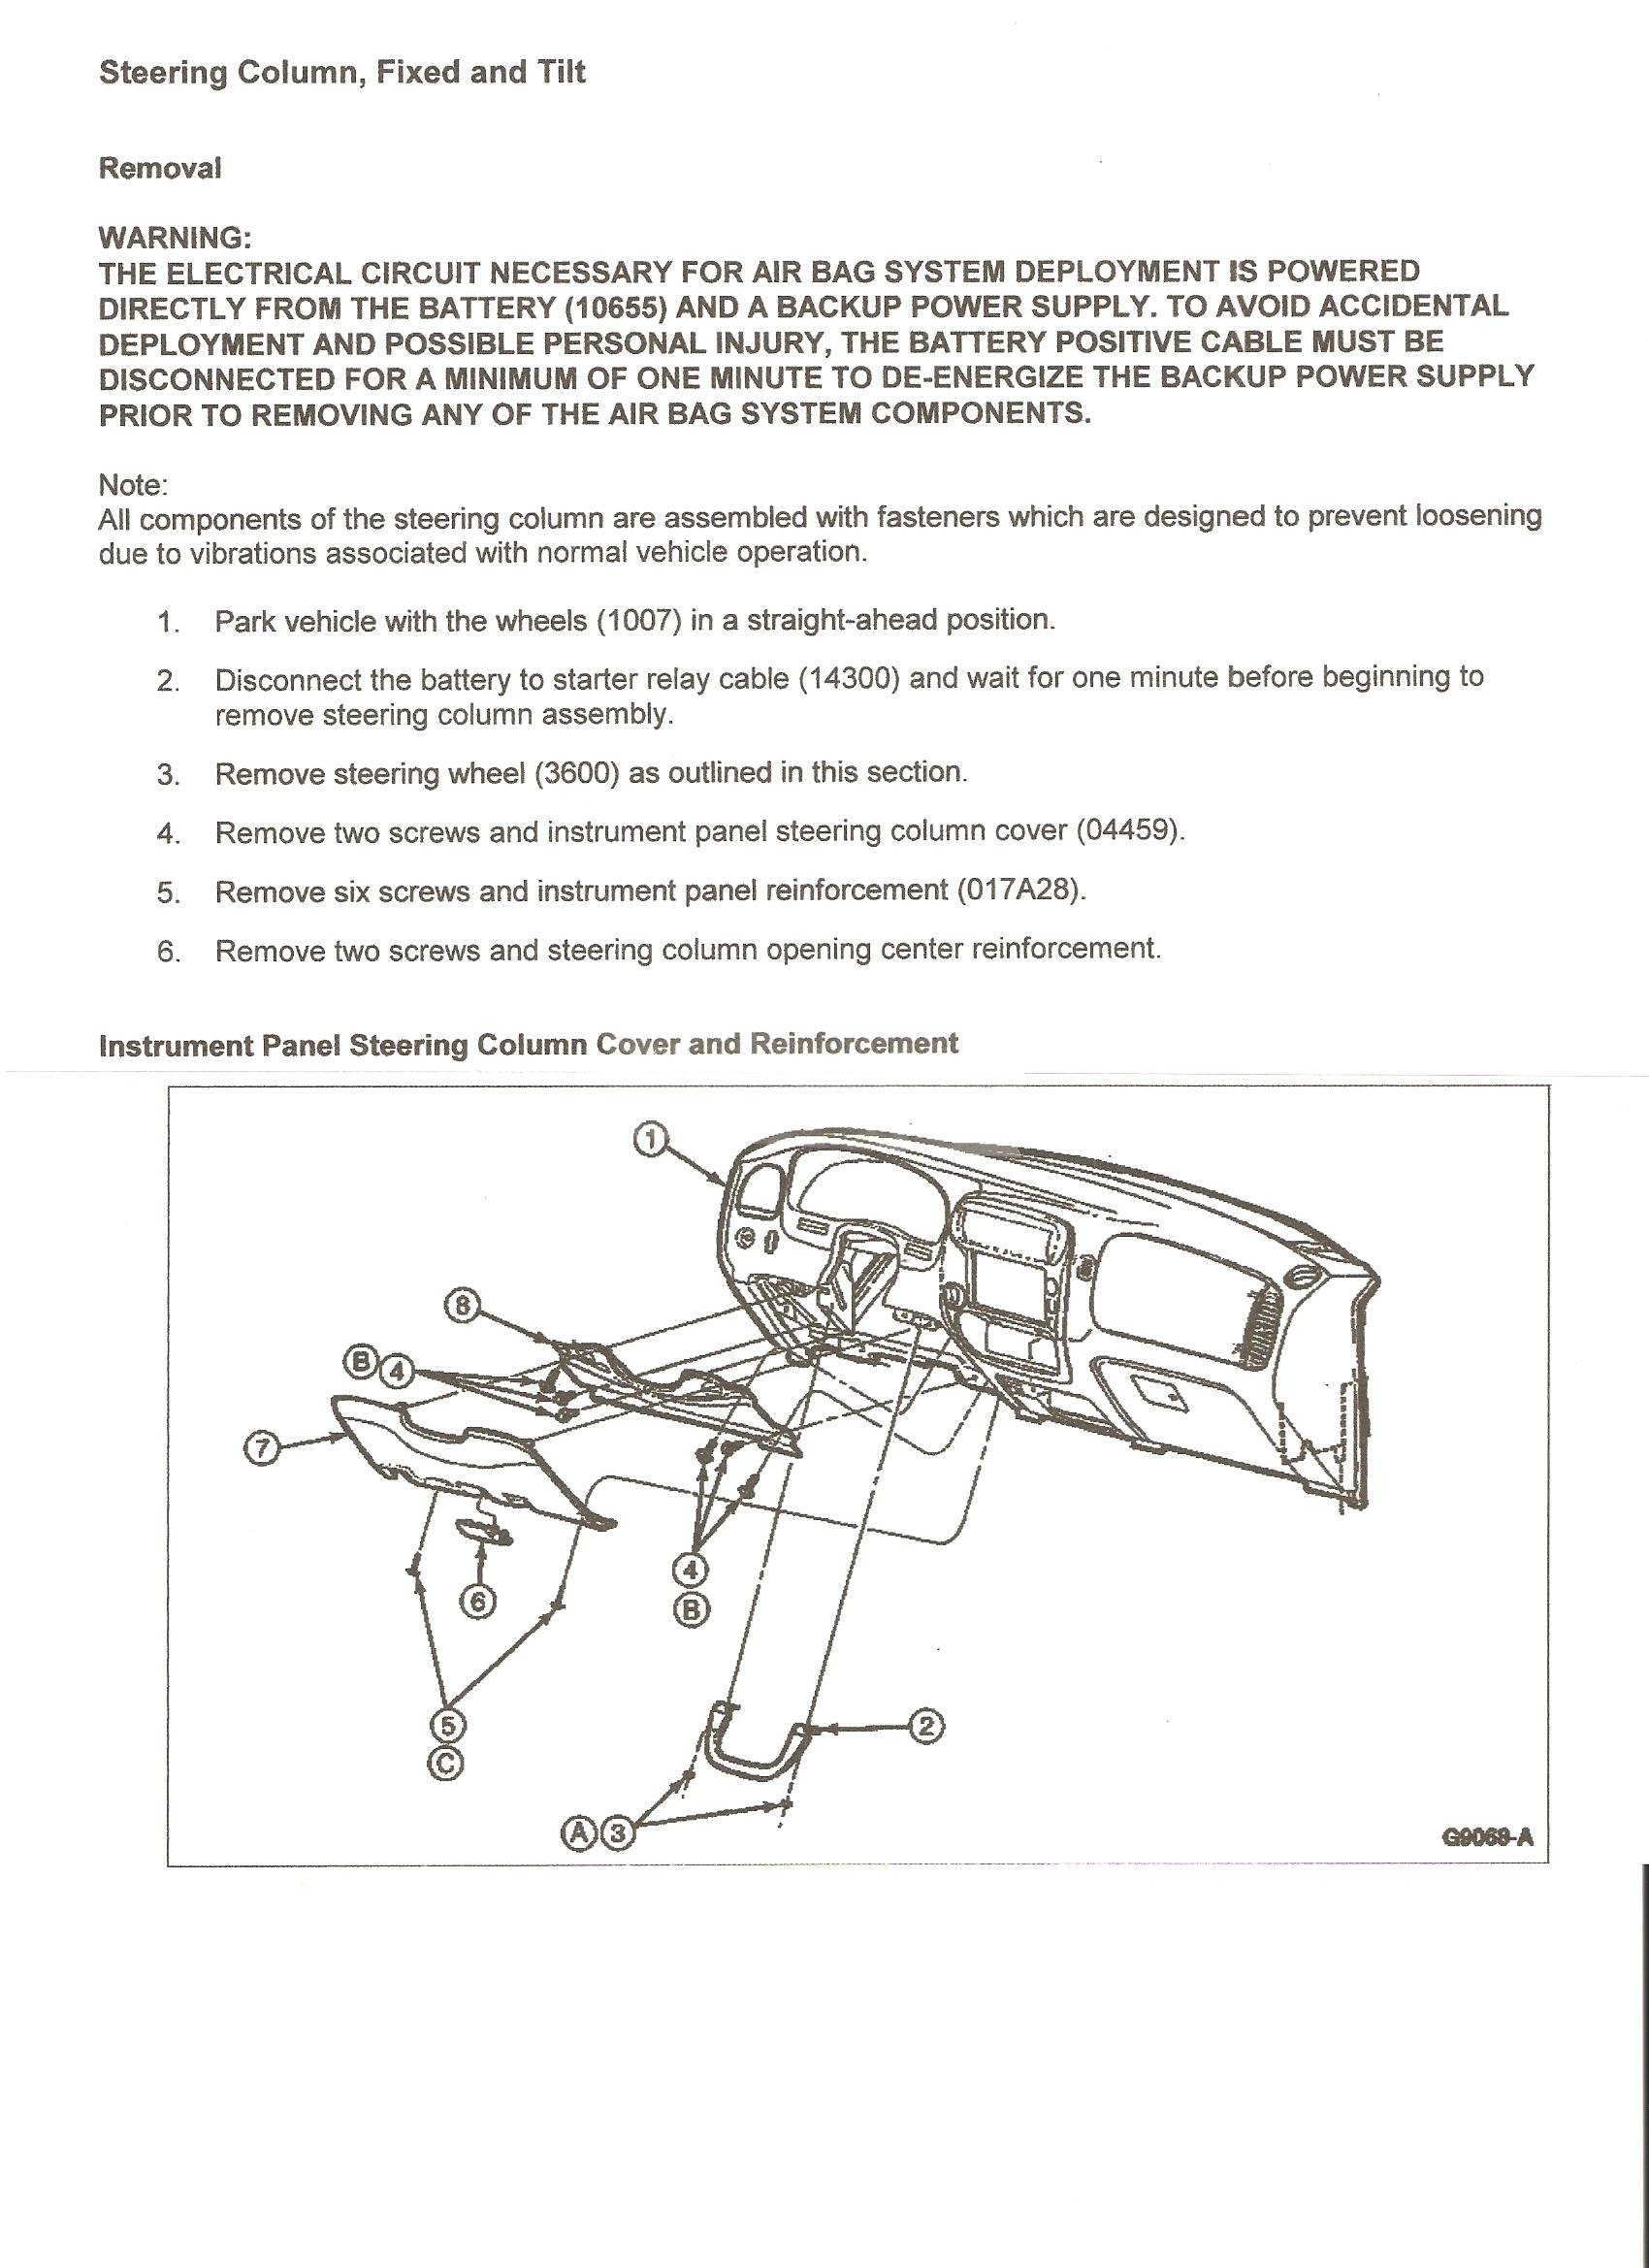 Need Instructions And Pics For Dis Assembly Of Steering Column 96 Ford Ranger Airbag Wiring Diagram Steve Graphic